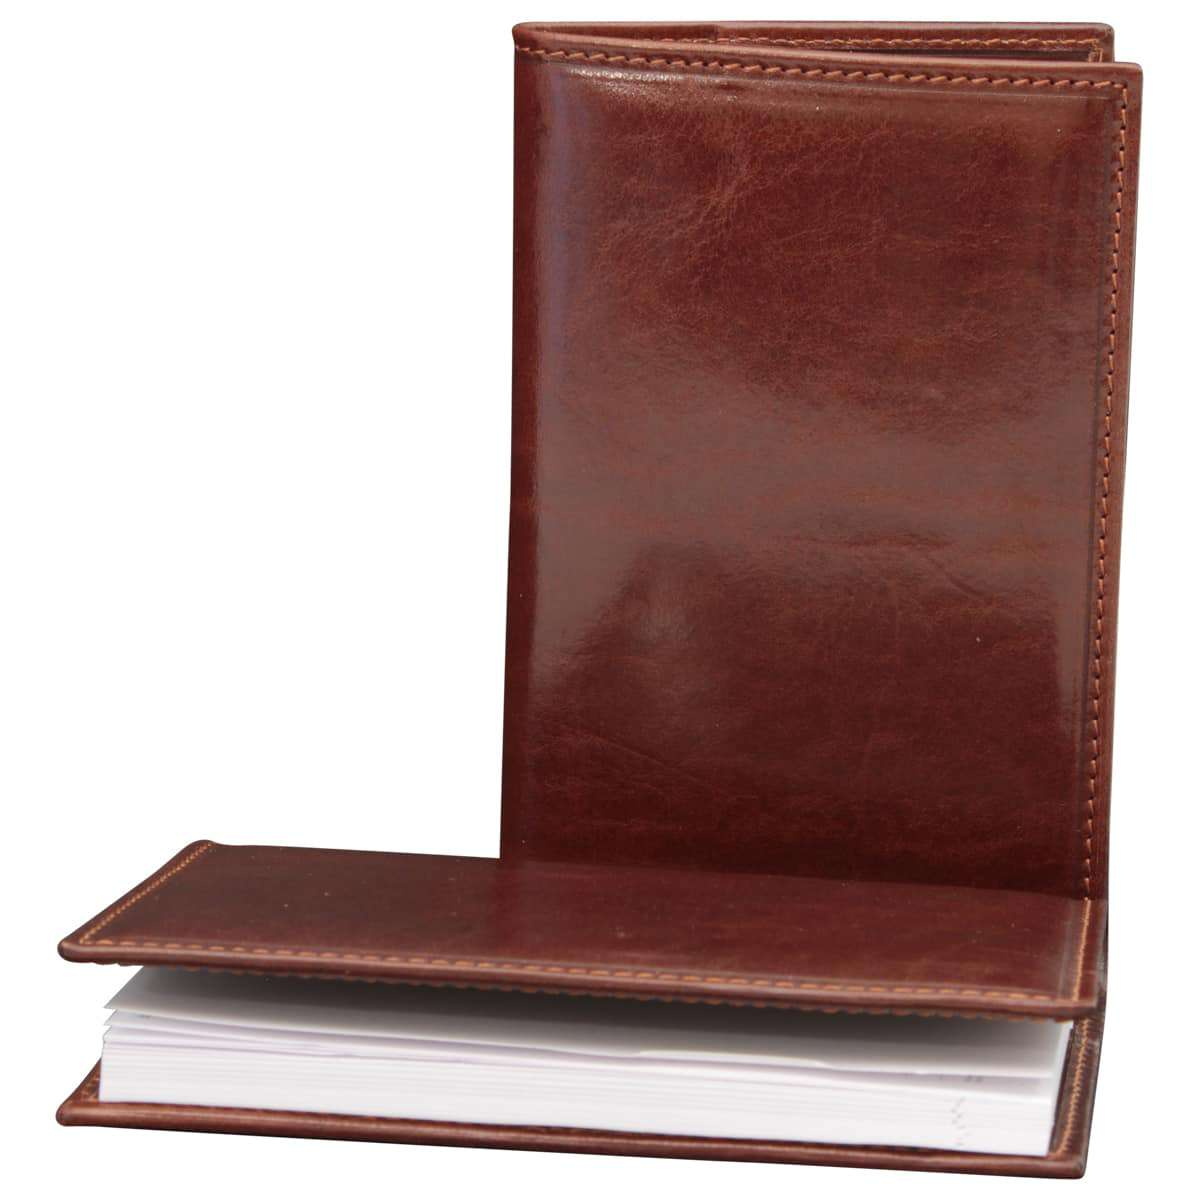 Leather Daily Planner - Brown | 505605MA E | Old Angler Firenze